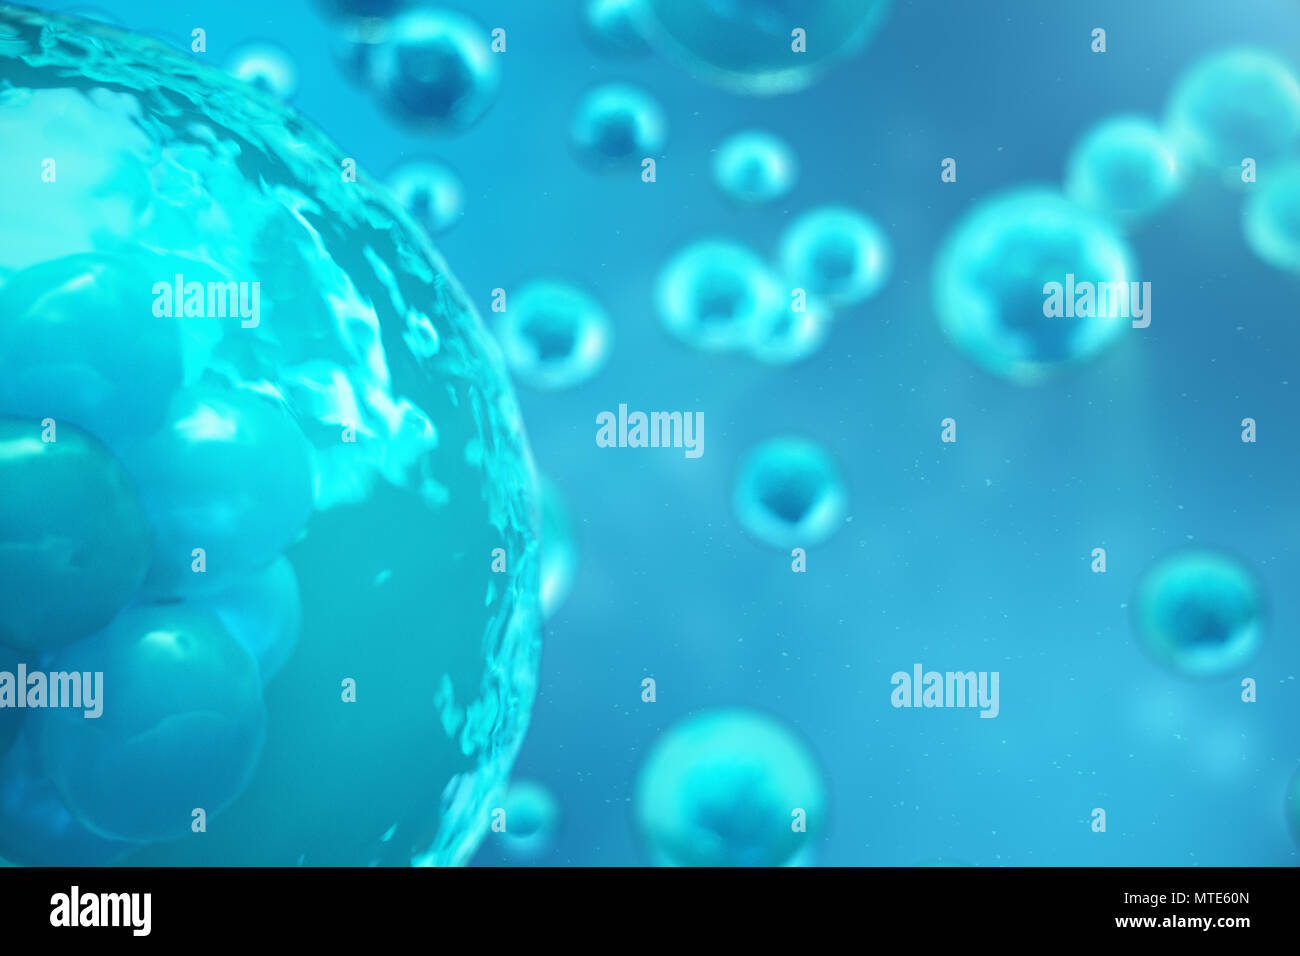 3D Rendering human or animal cells on blue background  Concept Early